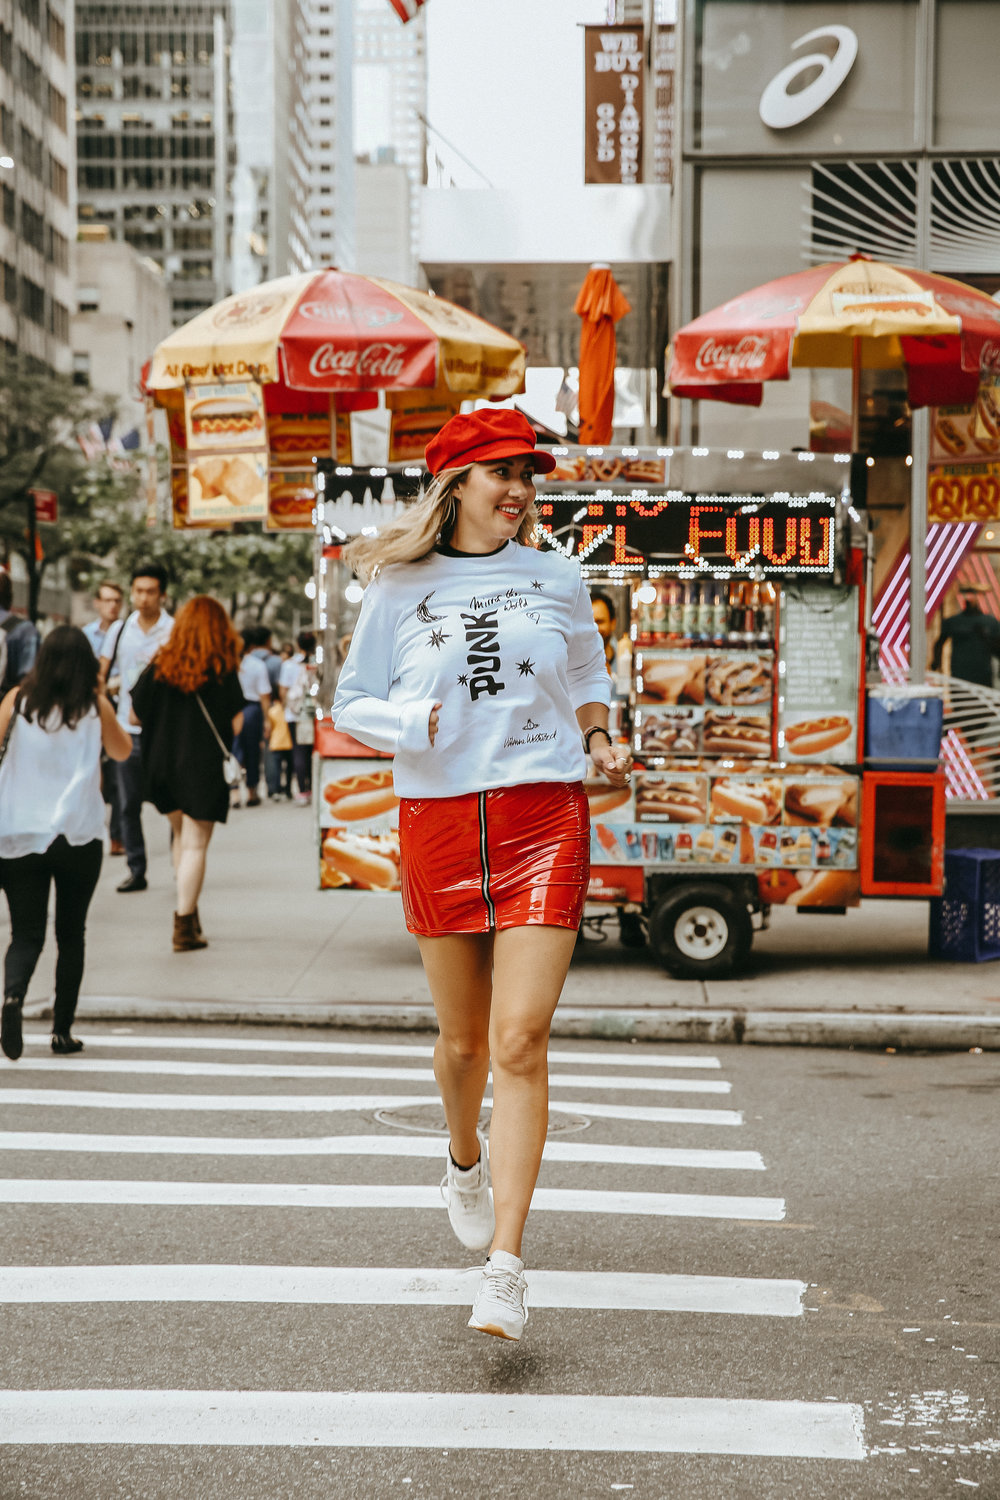 The Style Sauce // Fashion blogger // New York City street style // Yoox Soccer Couture // Vivienne Westwood sweatshirt